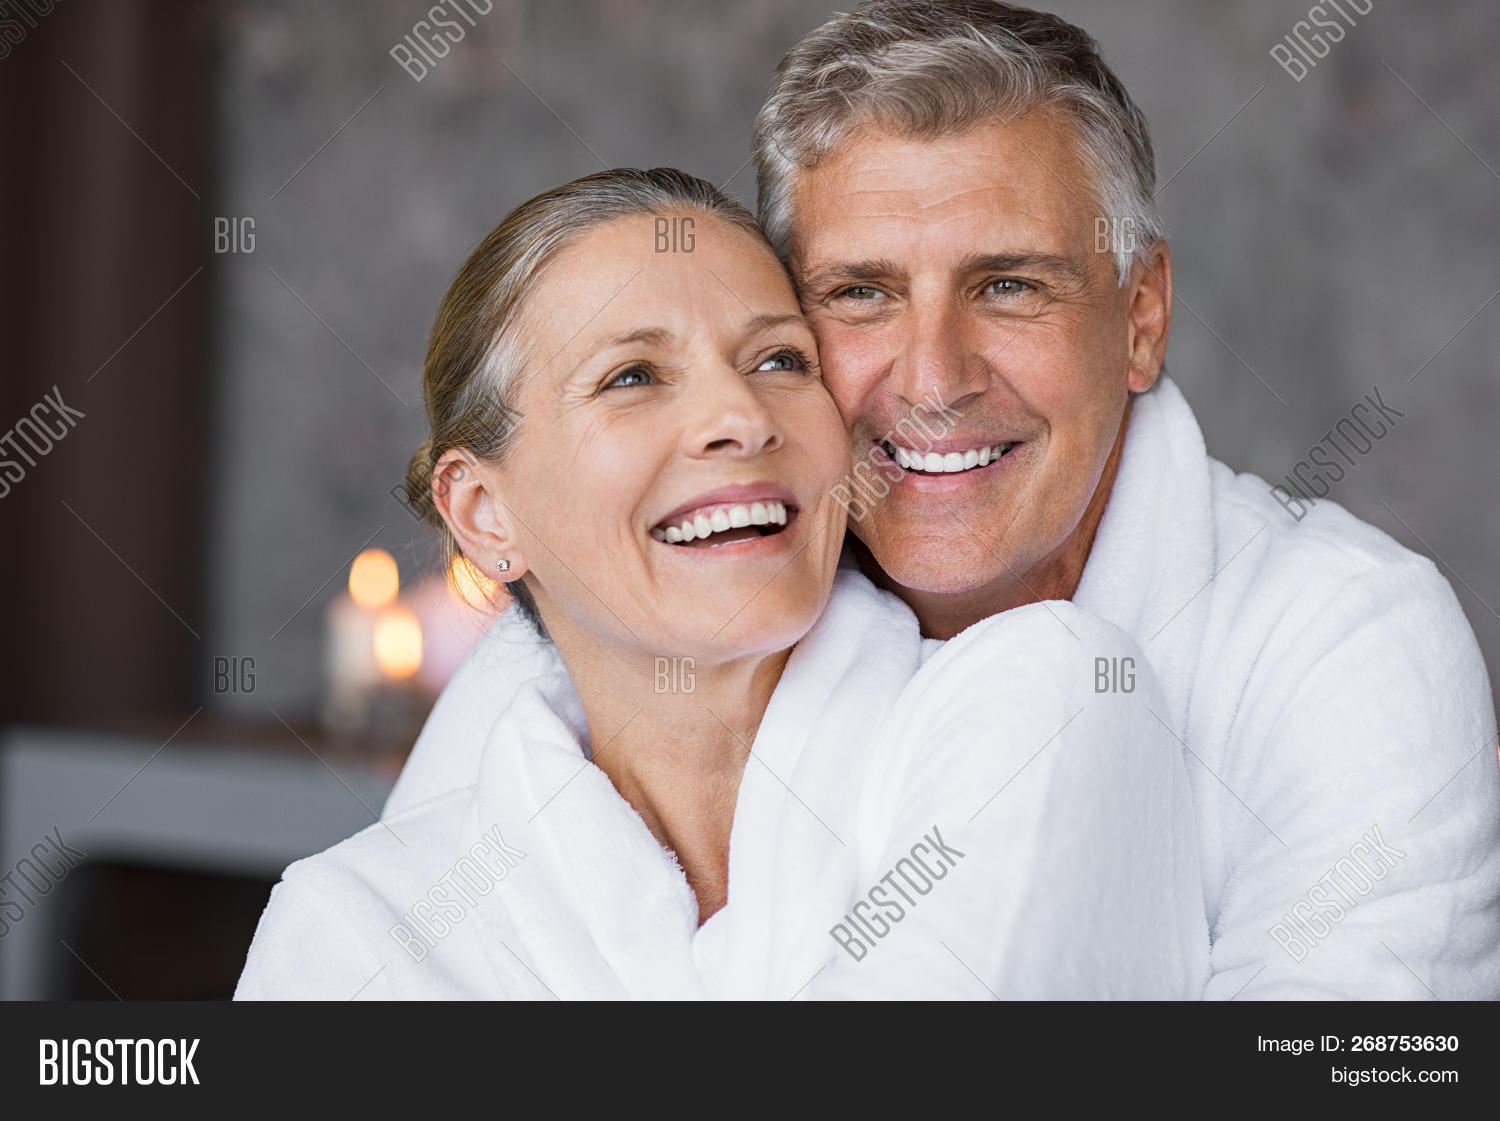 40s,50s,active seniors,bathrobe,beauty,care,carefree,cheerful,comfortable,couple,day spa,embrace,embrace couple,embracing,enjoy,face,happy,hospitality,hotel,hug,husband,laugh,love,luxury,man,mature,matured,mid adult woman,middle aged couple,middle aged woman,old,relax,resort,romance,romantic,salon,senior,senior couple,senior man,senior woman,smiling,spa,together,toothy smile,vacation,wellbeing,wellness,wellness spa,wife,woman